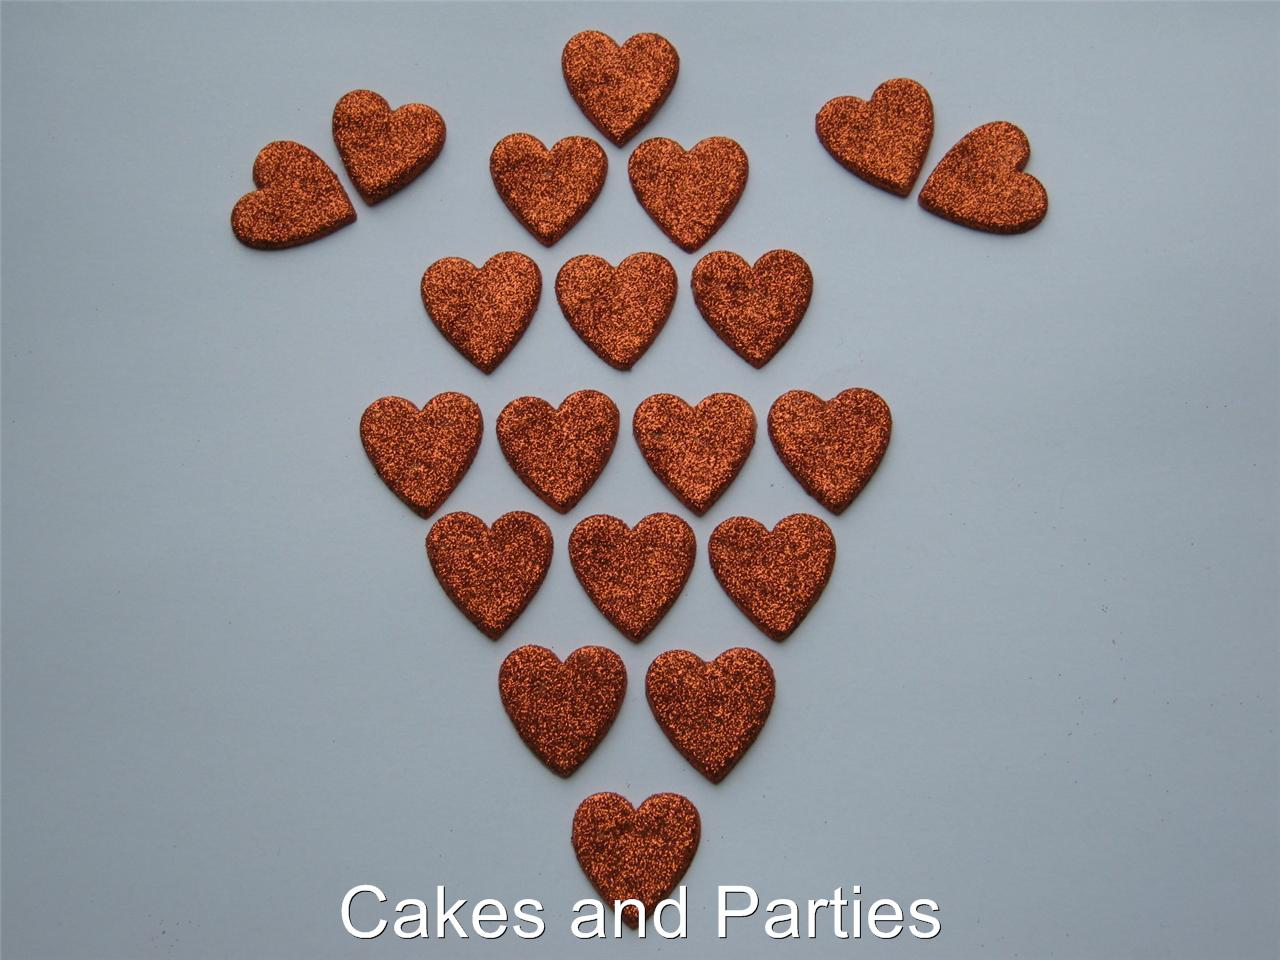 20xEDIBLE GLITTER HEARTS. CAKE DECORATIONS - VARIOUS ...